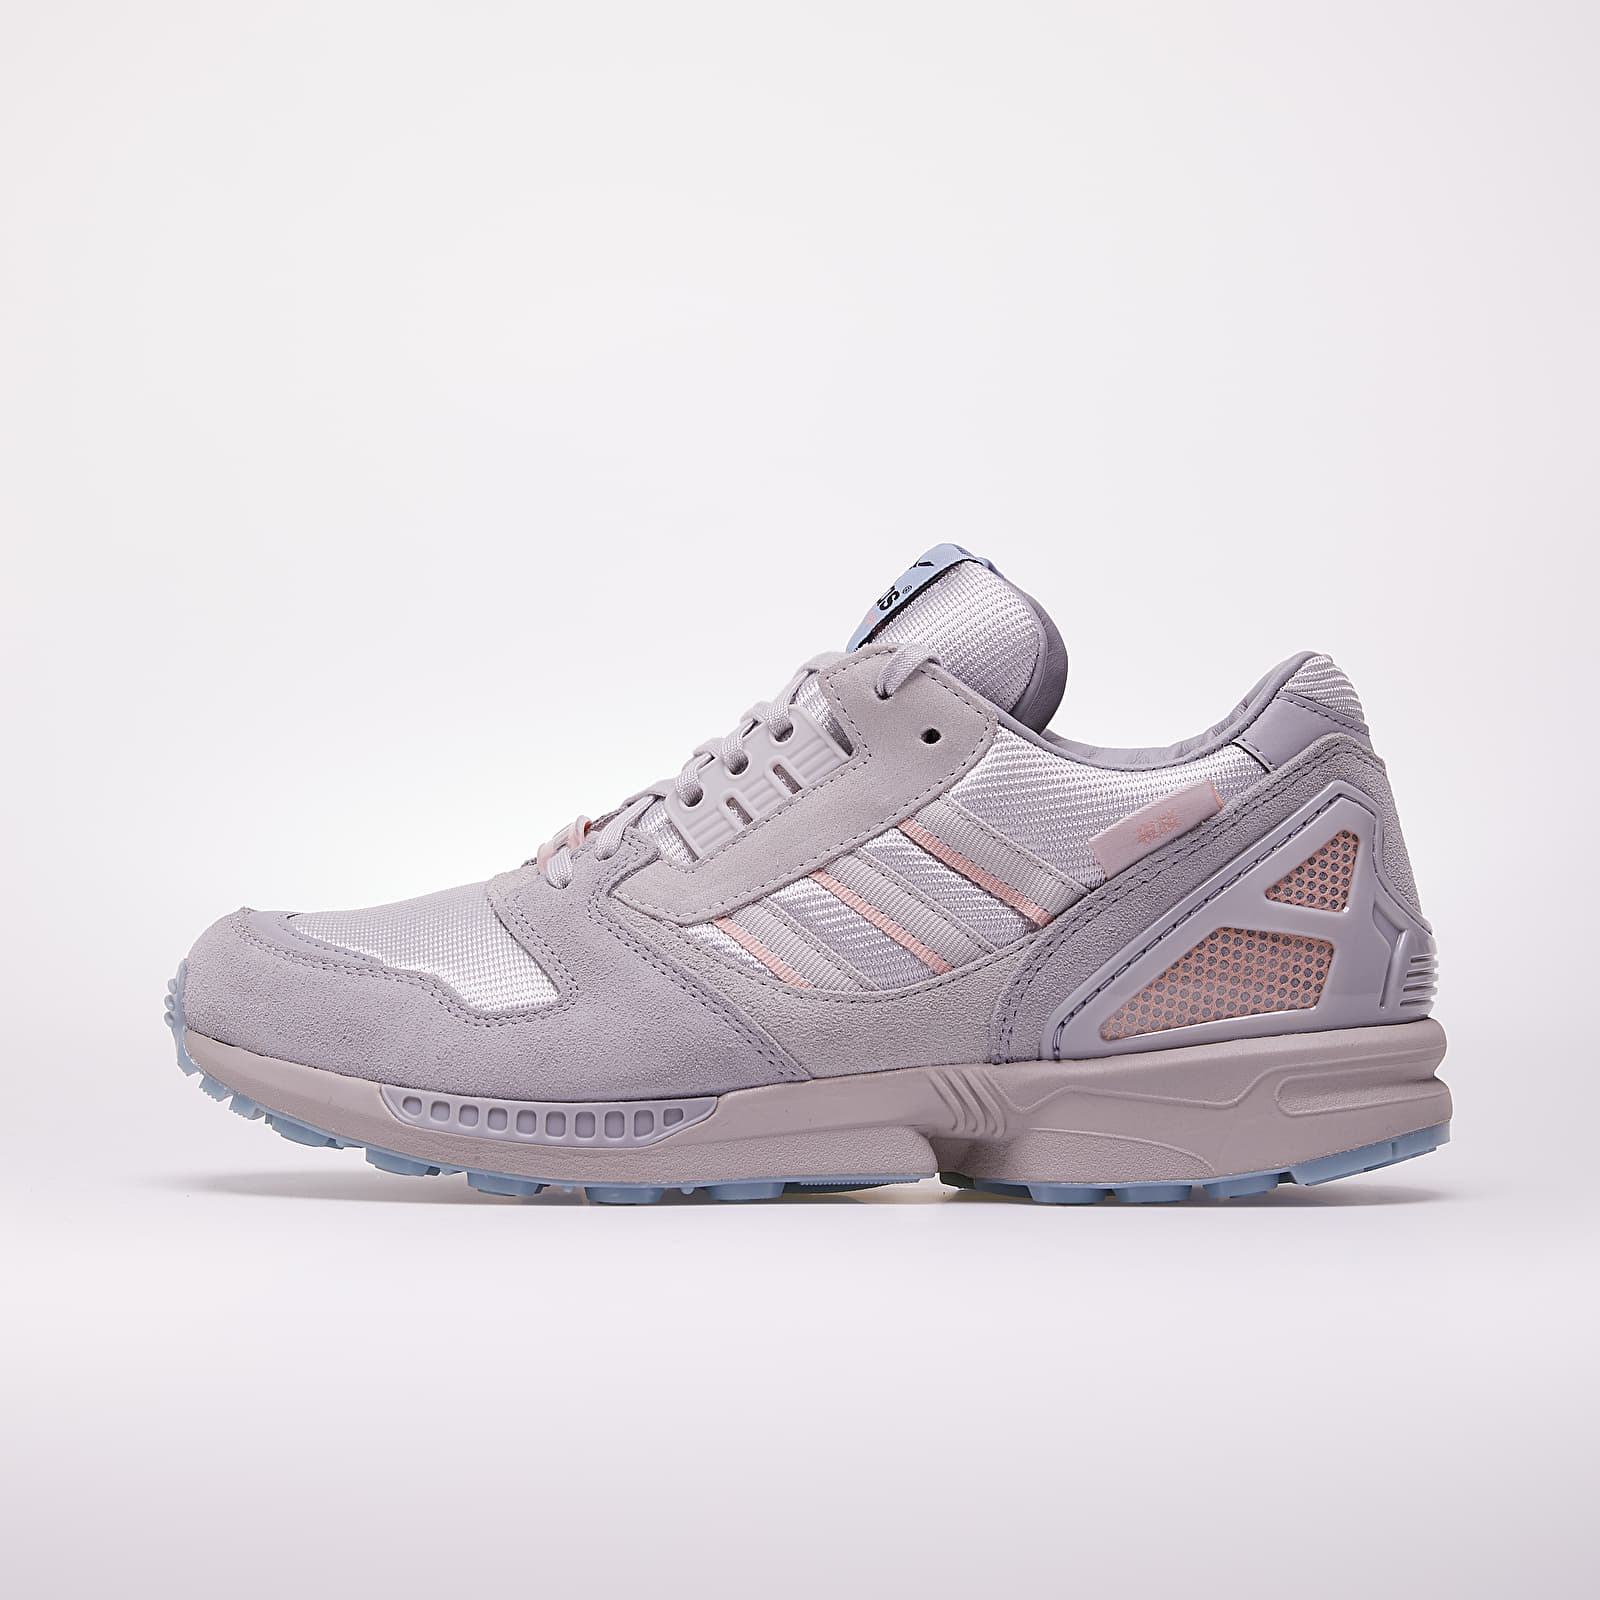 Men's shoes adidas ZX 8000 Grey One/ Vapor Pink/ Grey Two